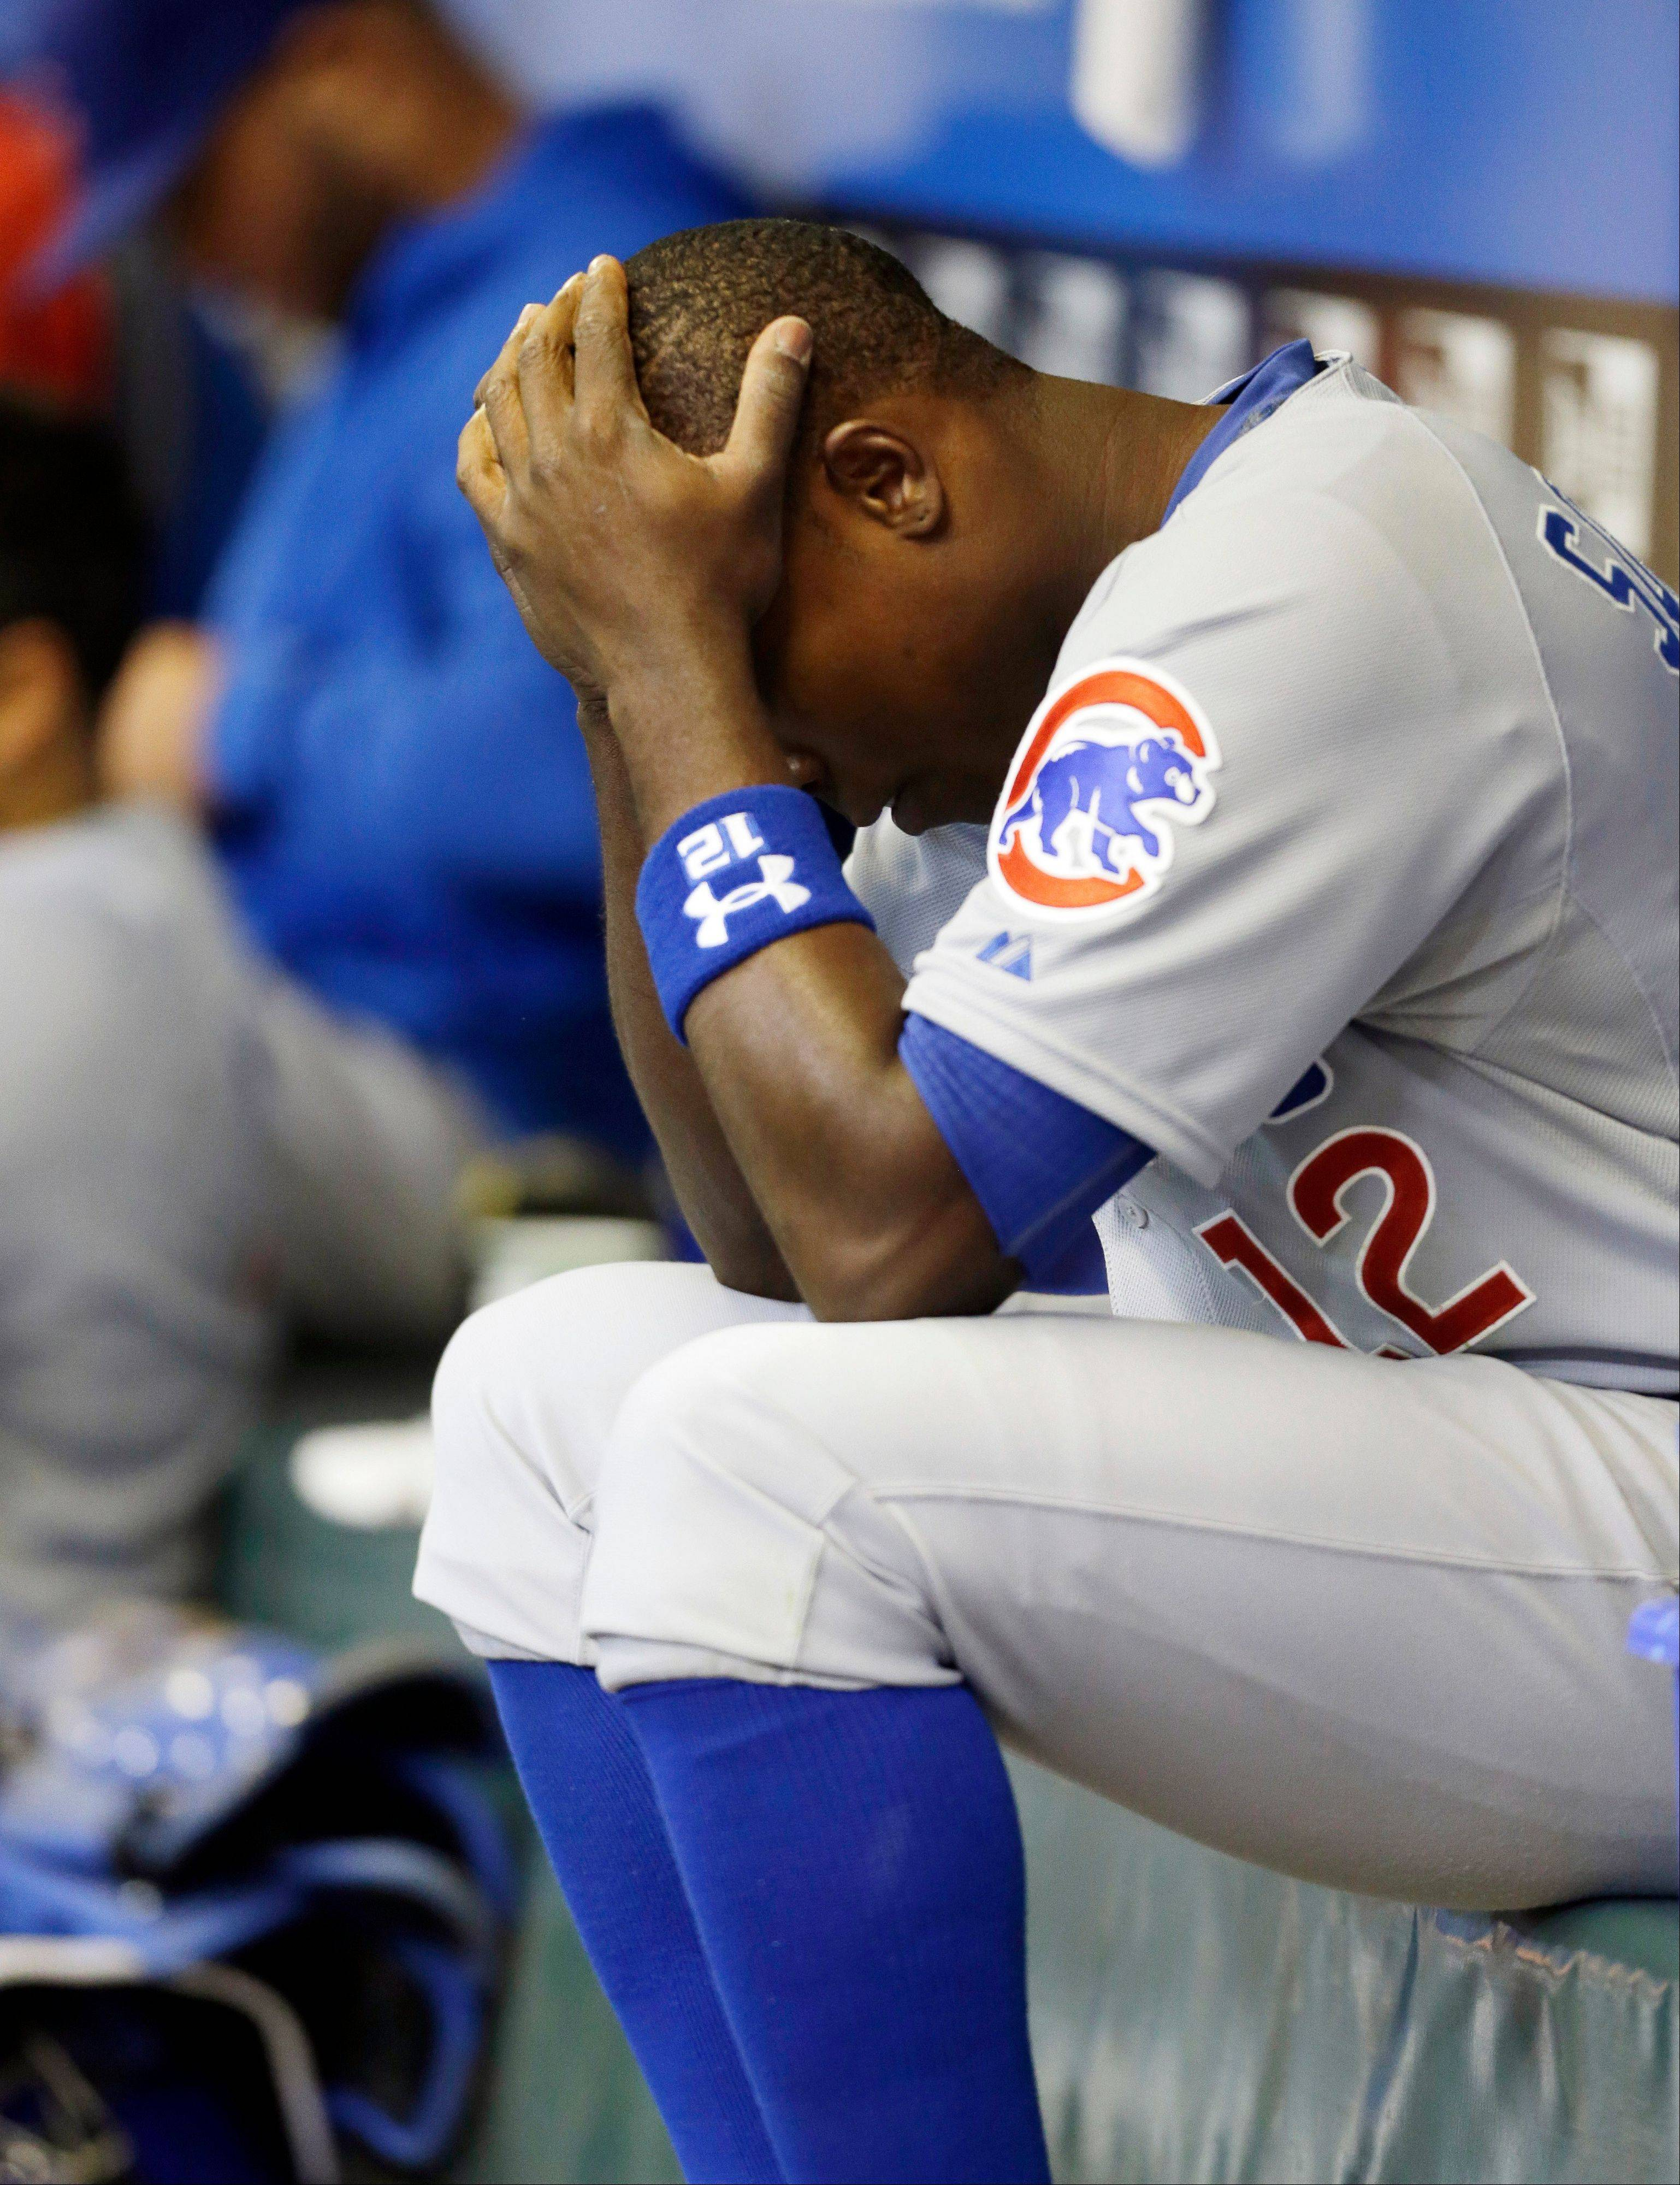 Chicago Cubs' Alfonso Soriano reacts in the dugout after the sixth inning of the game against the Milwaukee Brewers, Saturday in Milwaukee.